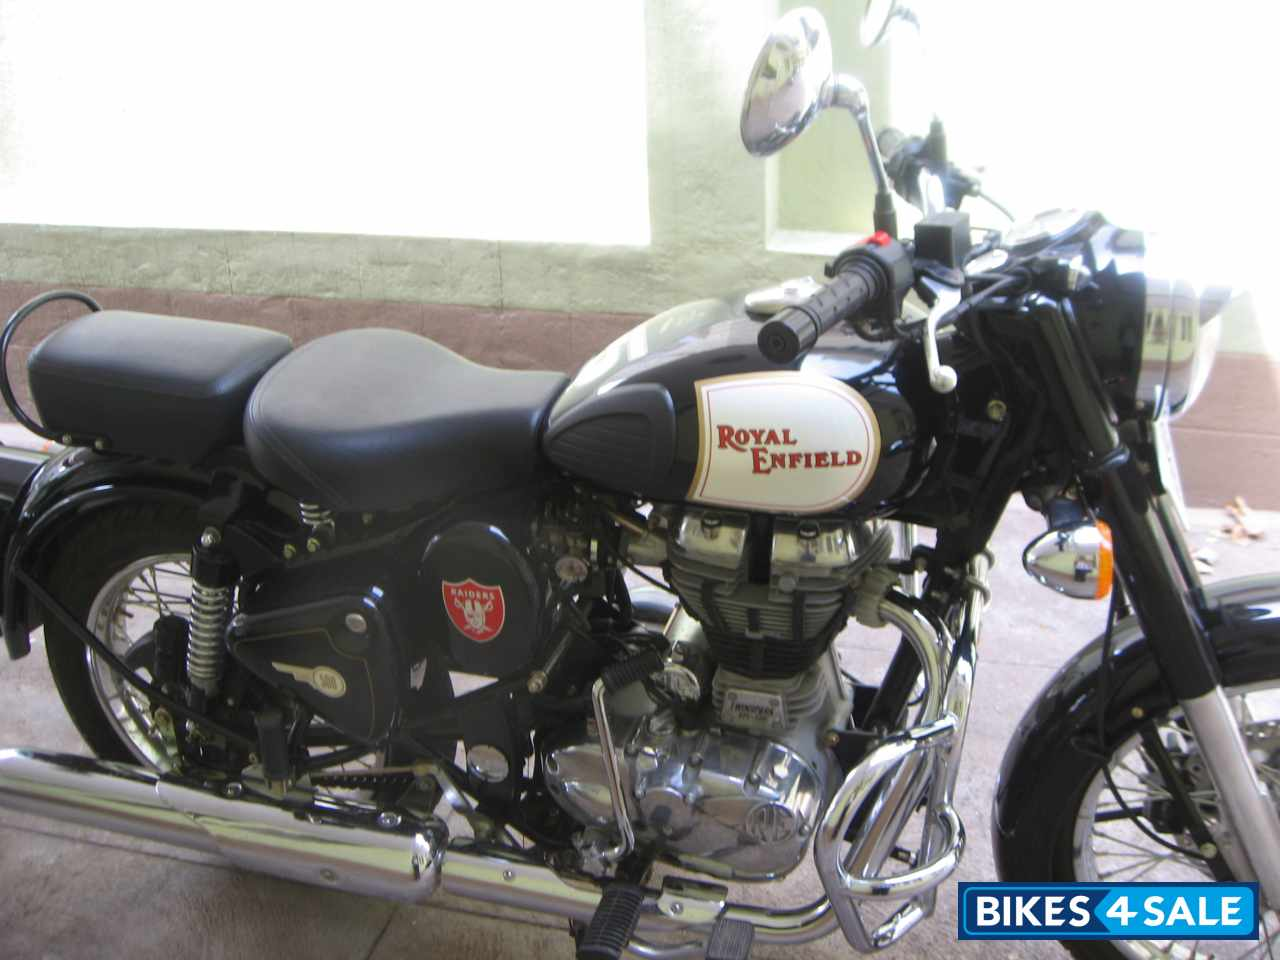 Royal Enfield Classic 500 Price in Bangalore Royal Enfield Classic 500